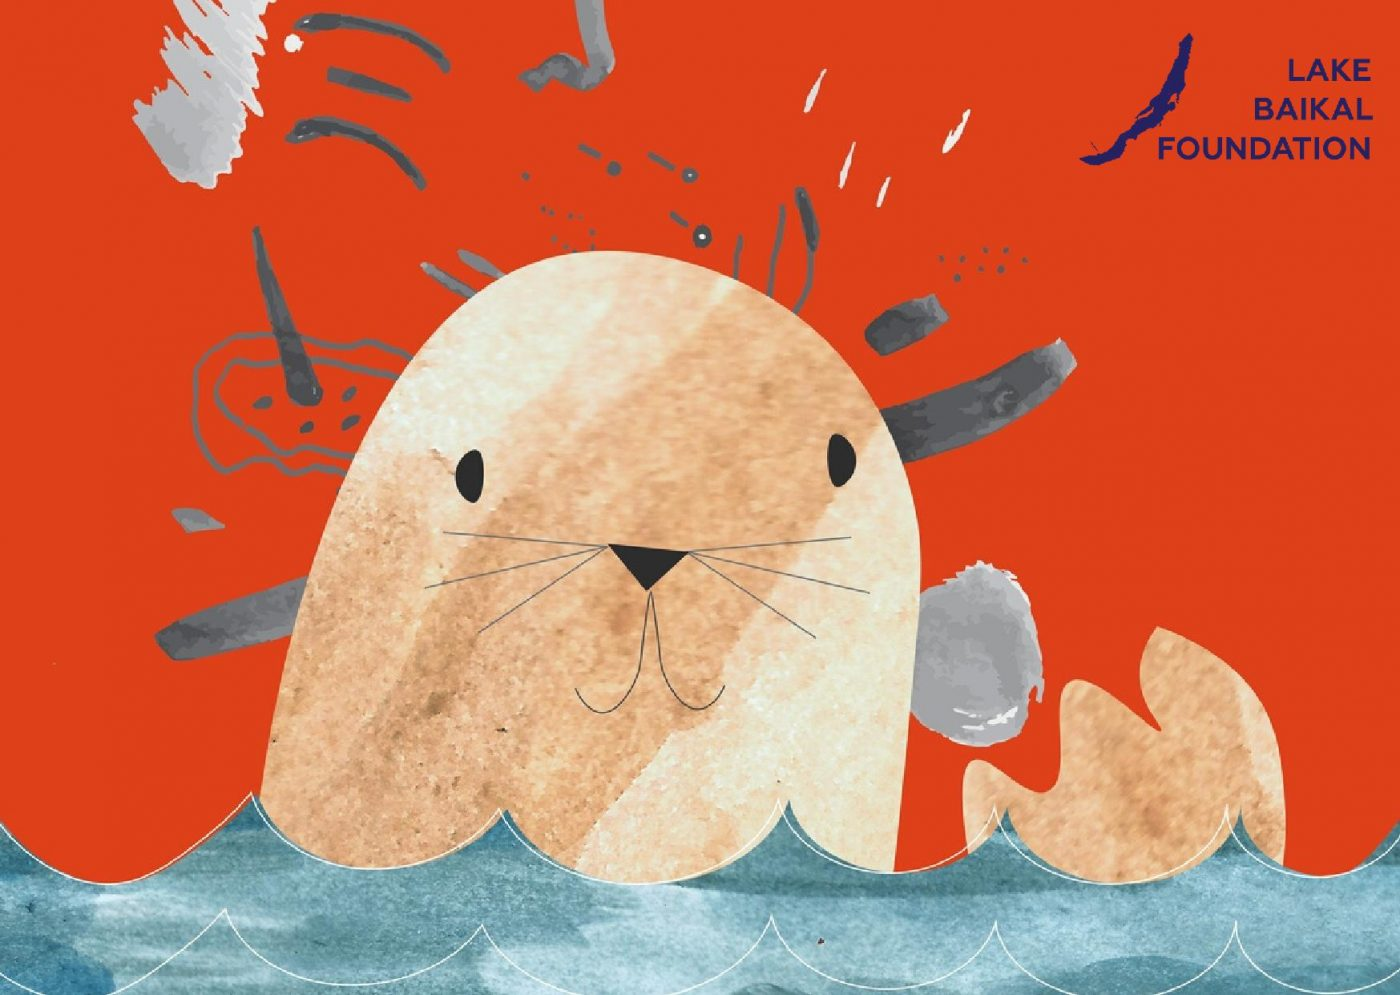 The Baikal Seal online lesson is available worldwide in English